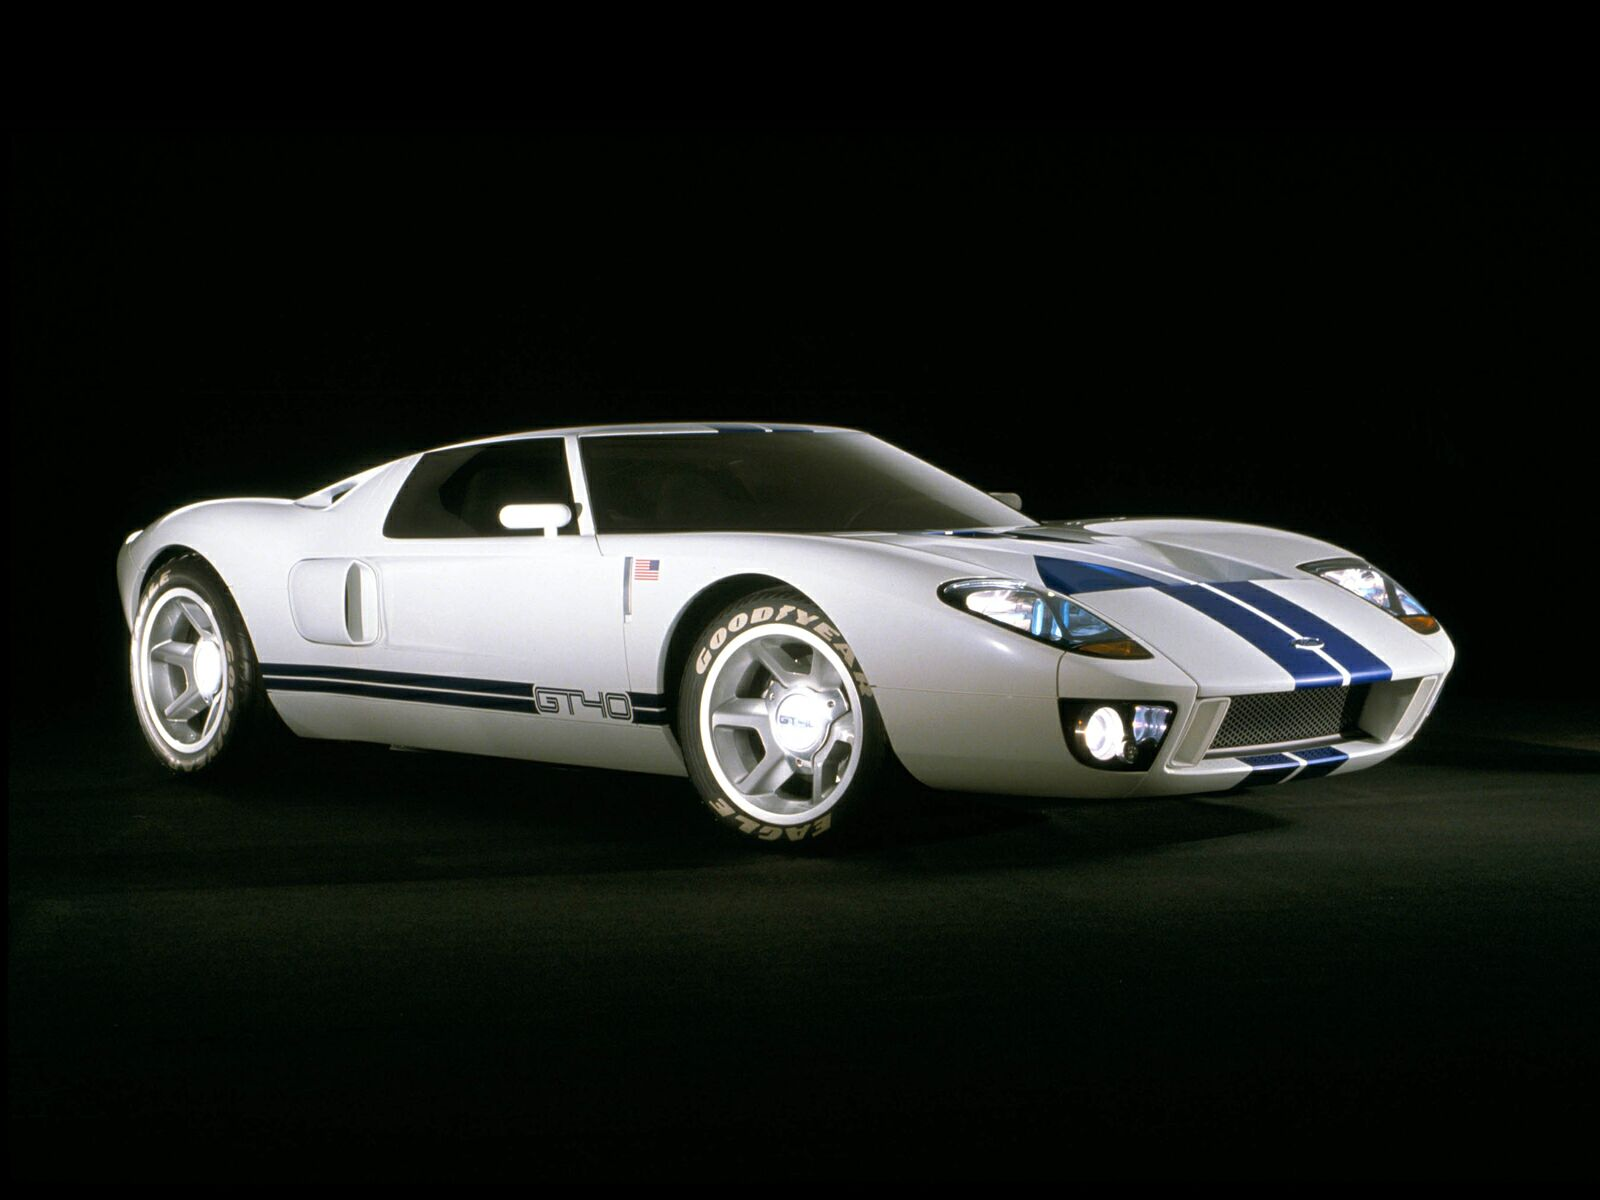 Ford Gt 2009 Wallpaper 5761 Hd Wallpapers in Cars   Imagescicom 1600x1200